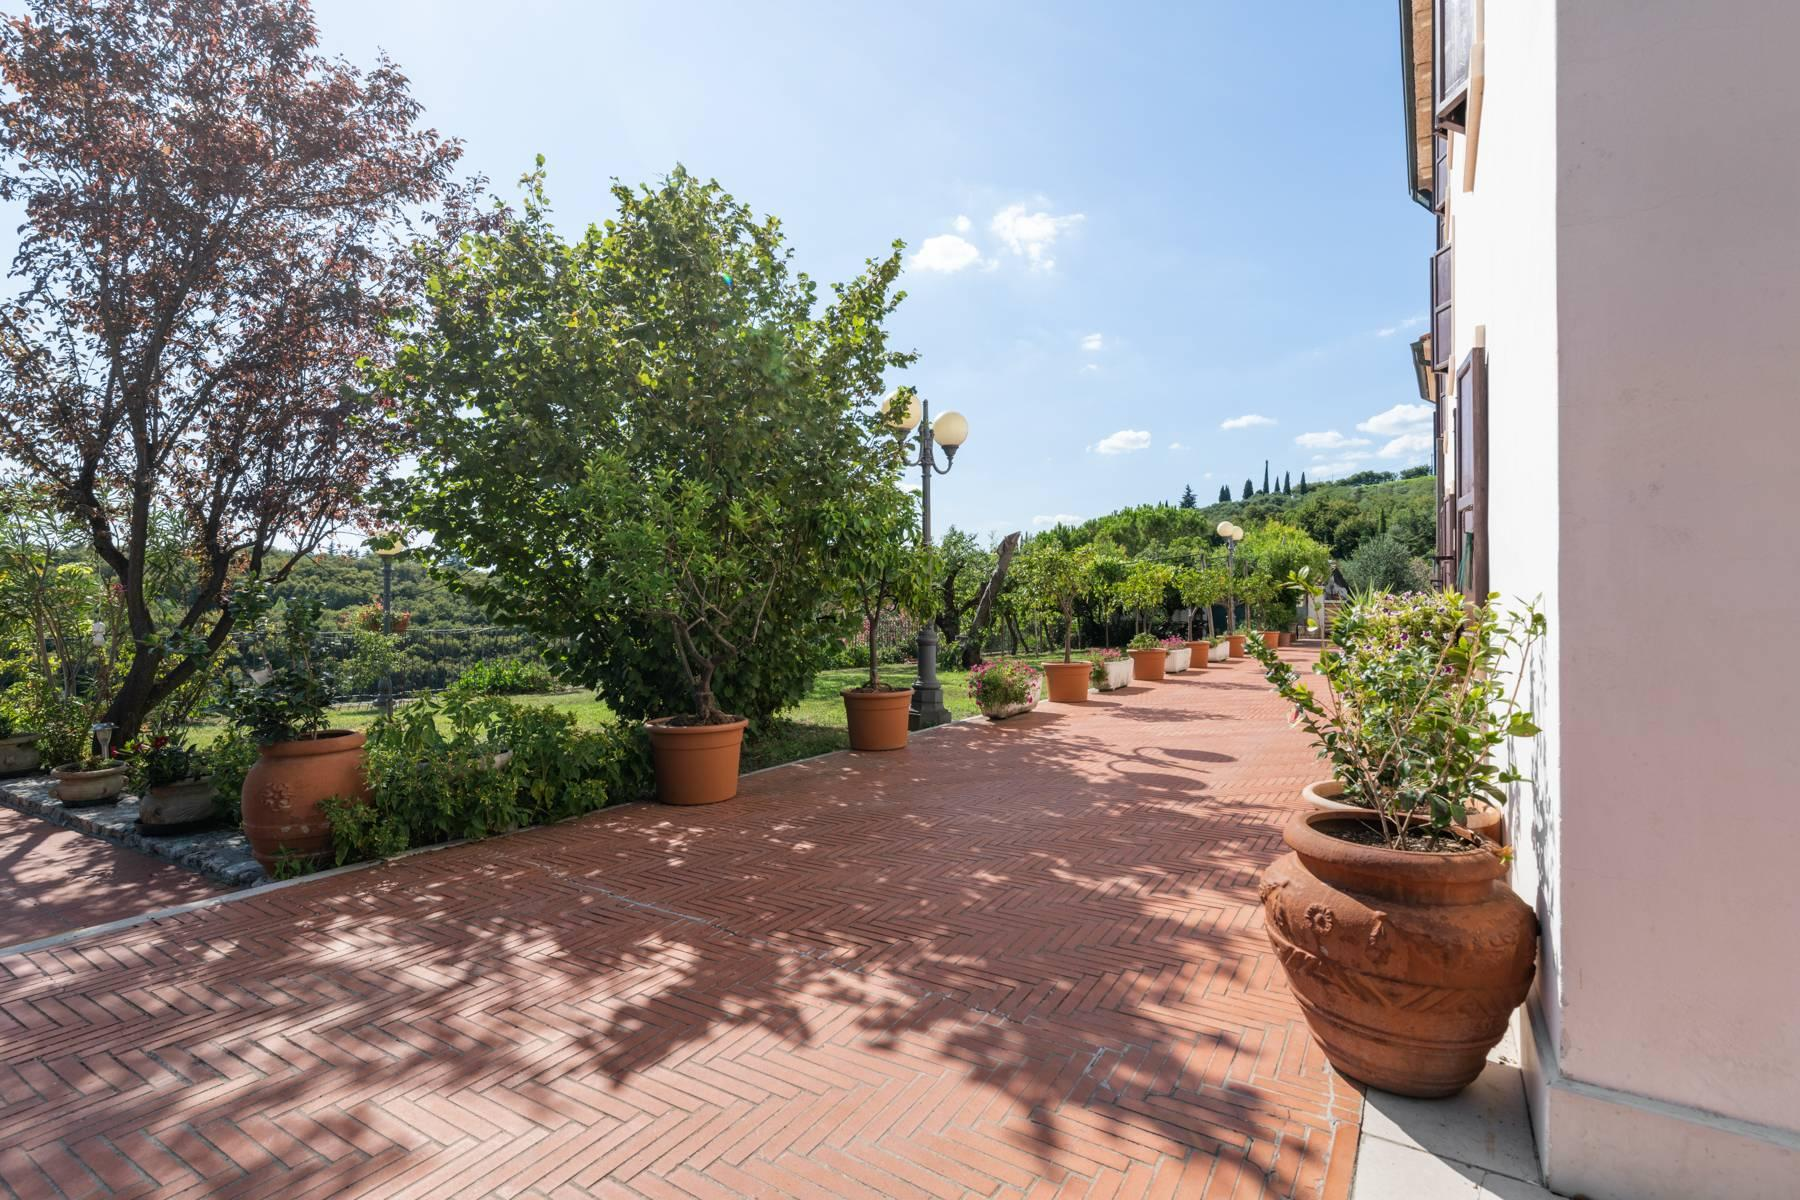 Historic country villa with swimming pool, tennis court and estate on the hills of Verona - 8